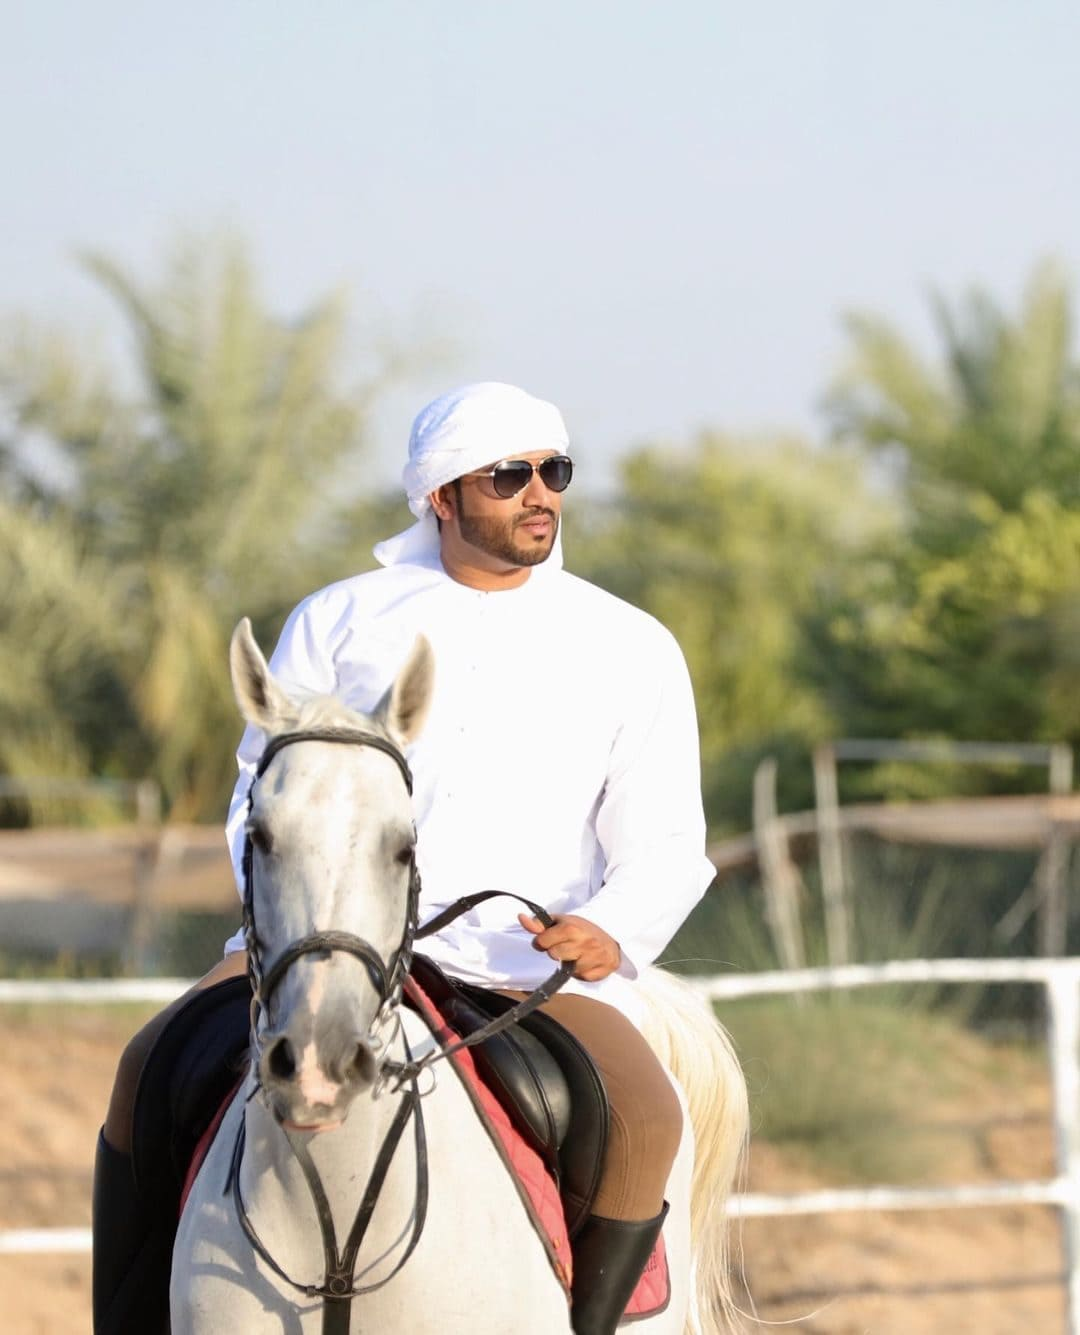 Noufal (nof.ad) - The Real Estate Tycoon From United Arab Emirates 9